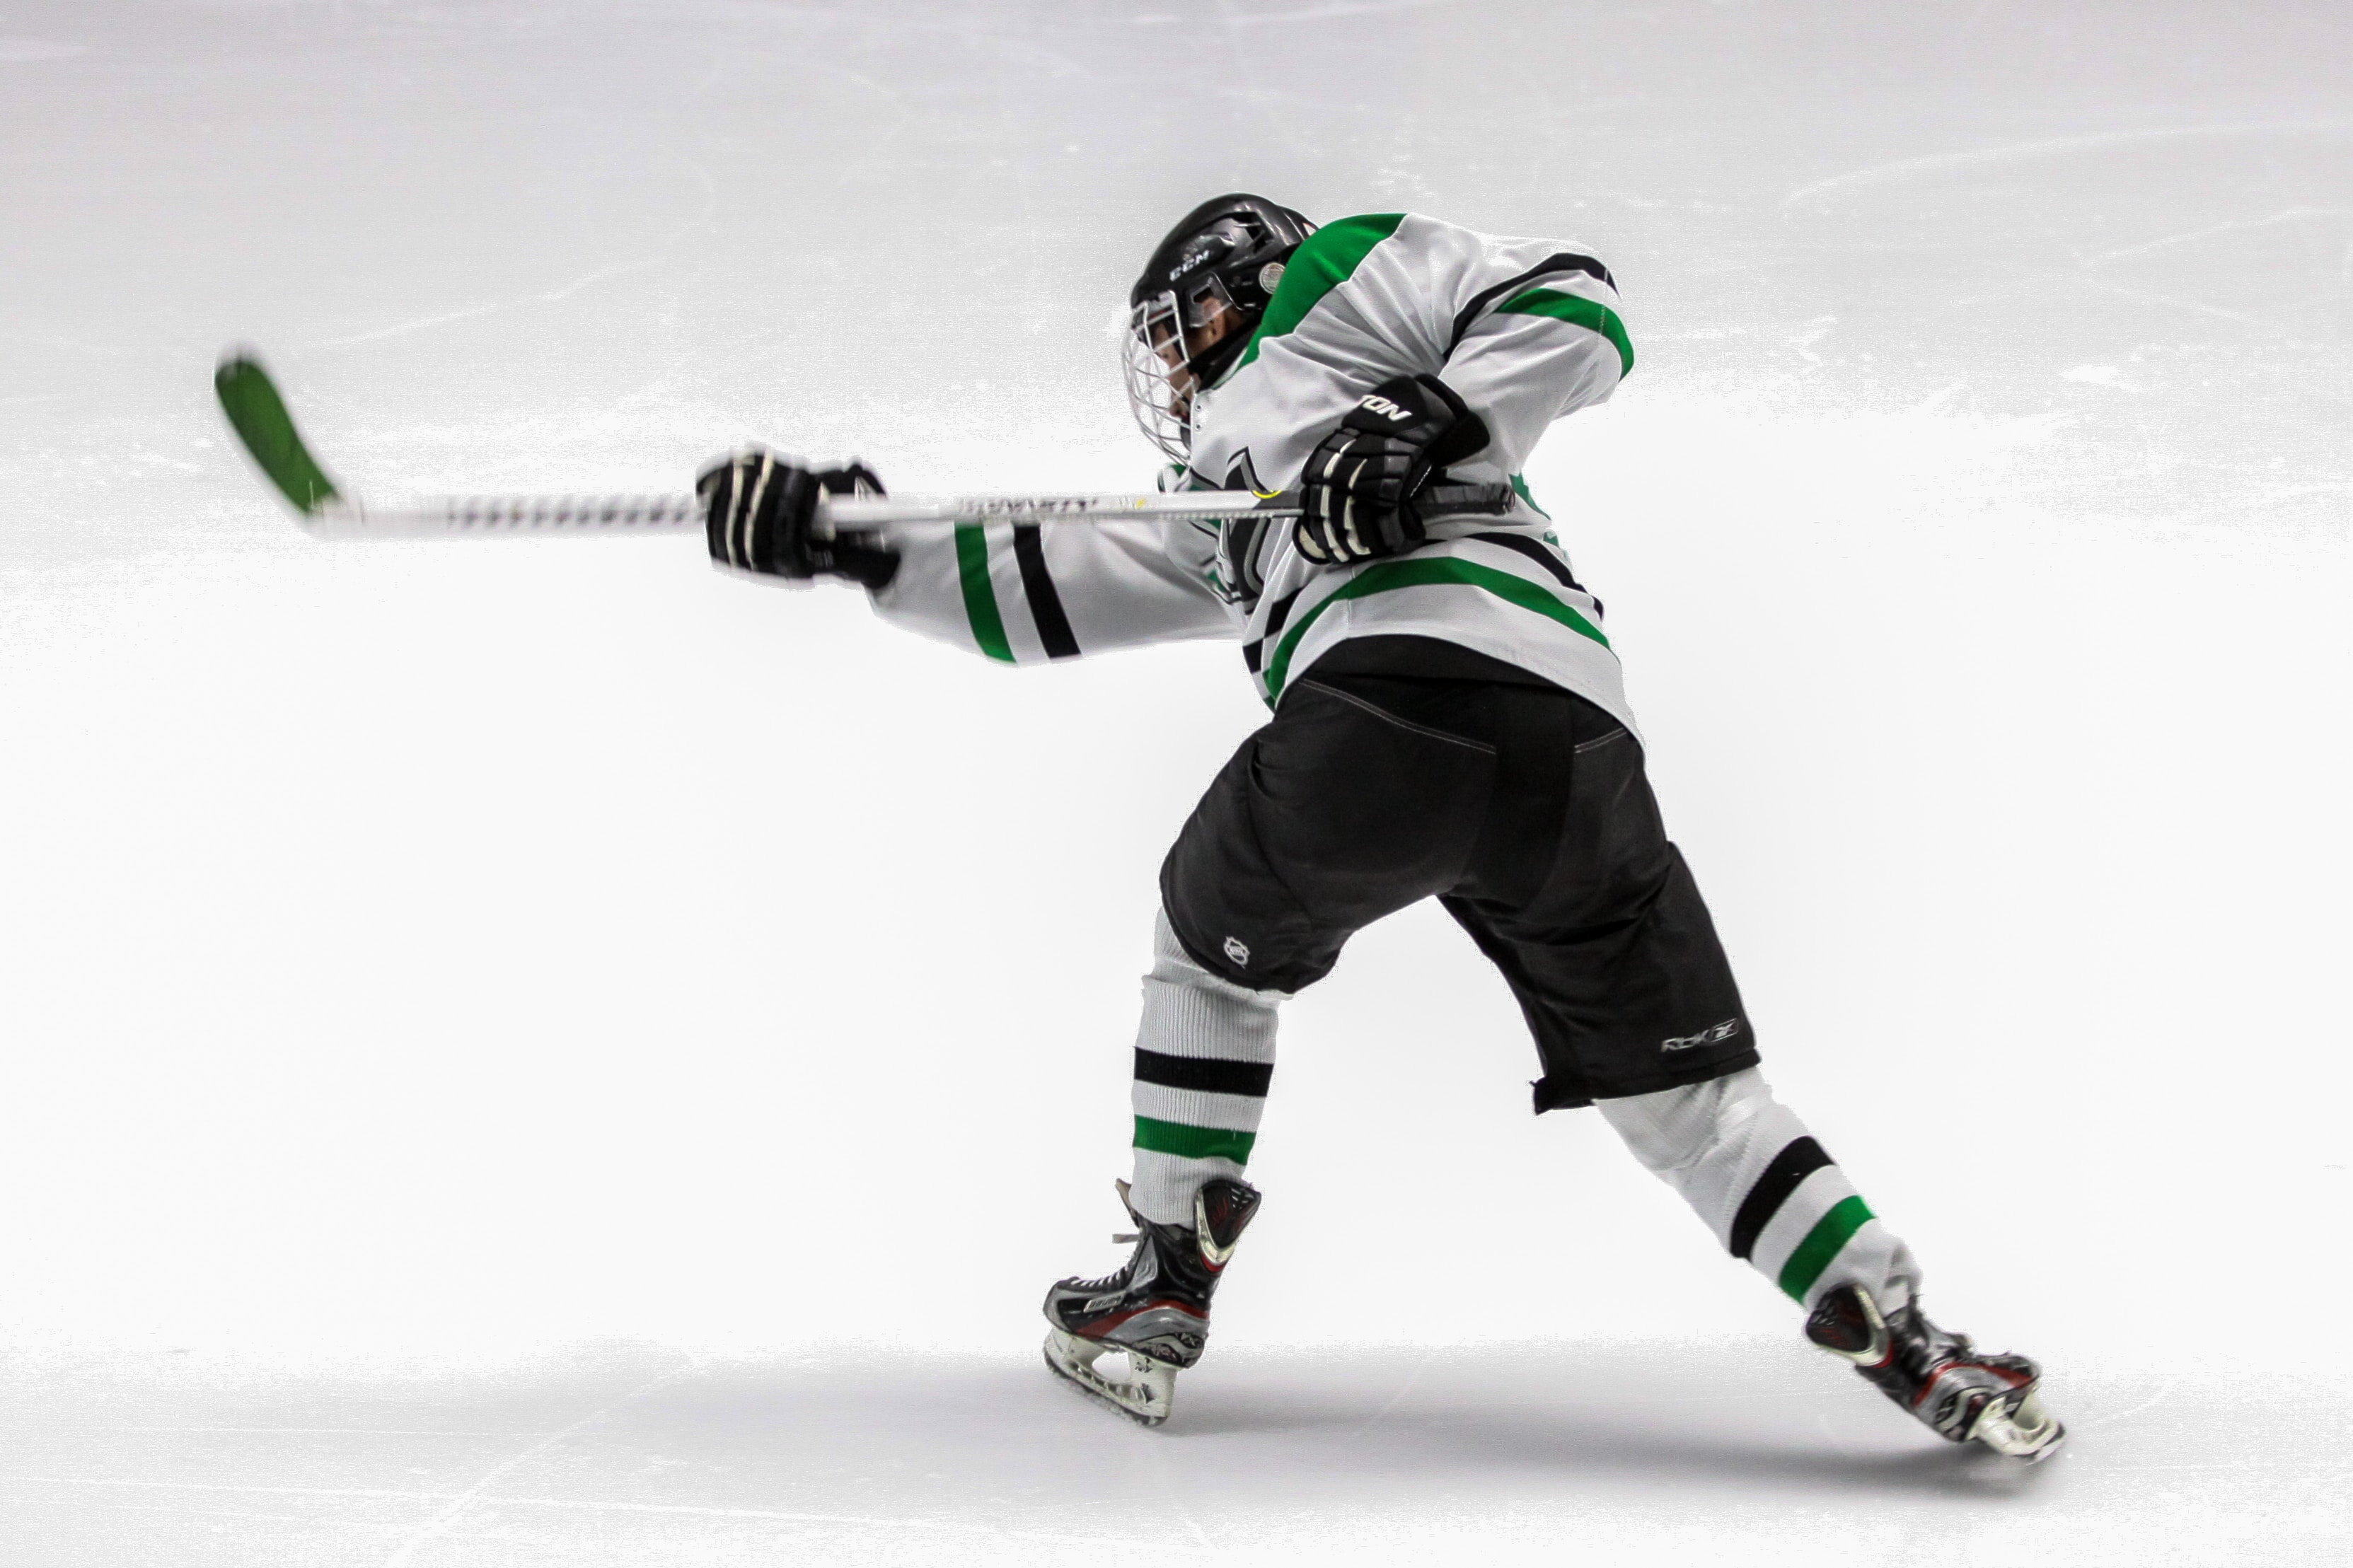 High Performance Hockey Equipment Market 2020 Global Industry Analysis, Sales, Supply, Demand and Forecast to 2025